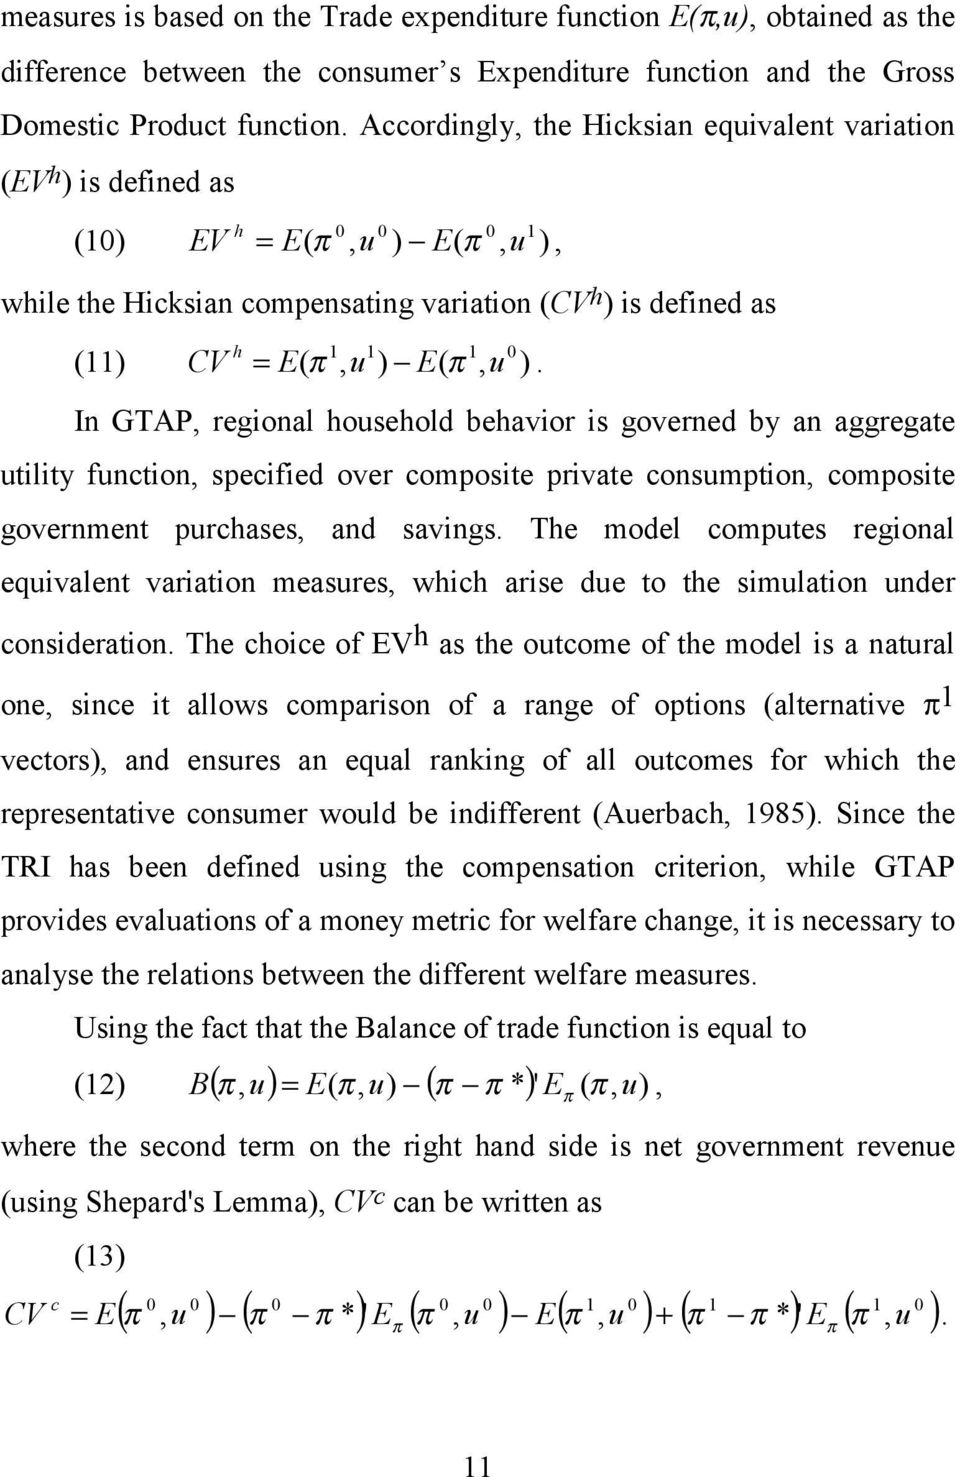 u ) E( π, u ). In GTAP, regional household behavior is governed by an aggregate utility function, specified over composite private consumption, composite government purchases, and savings.